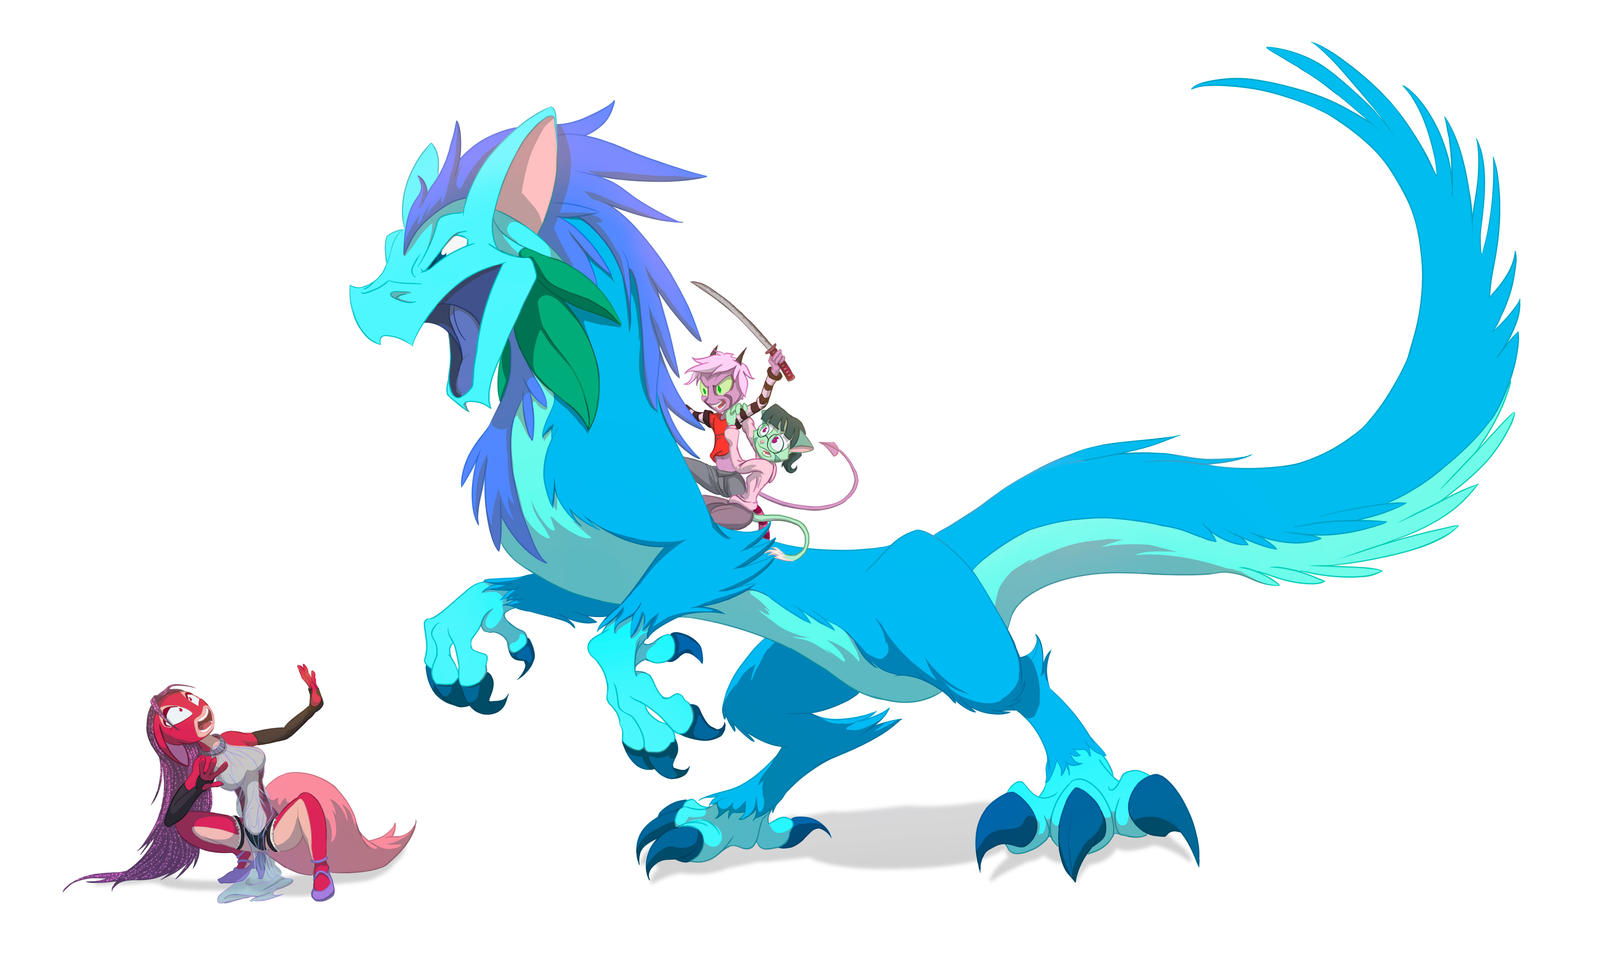 Riding Flowers and Slaying the Corrupt by BernardDK